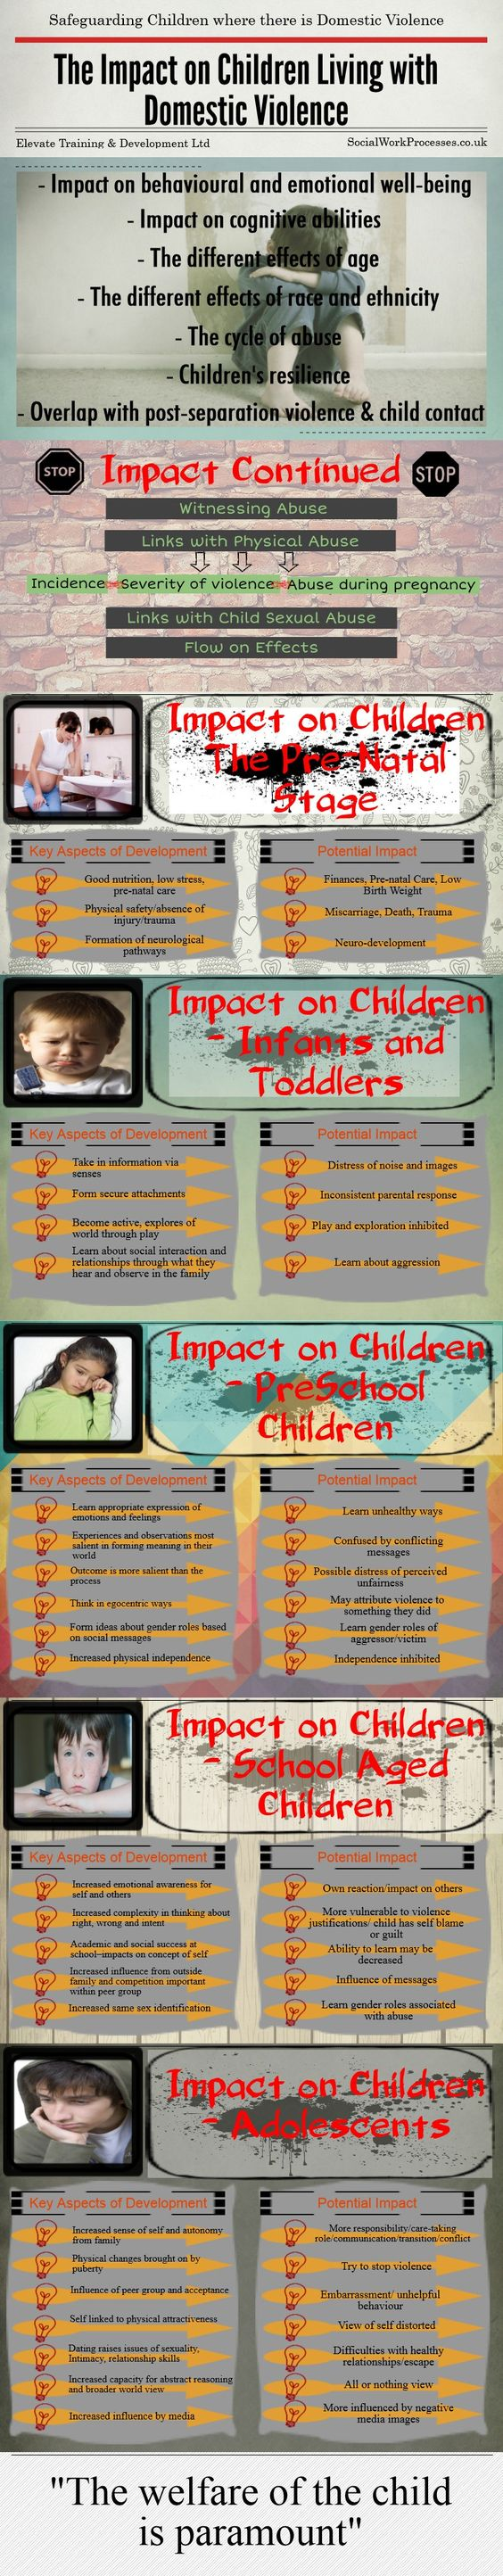 How Media Use Affects Your Child